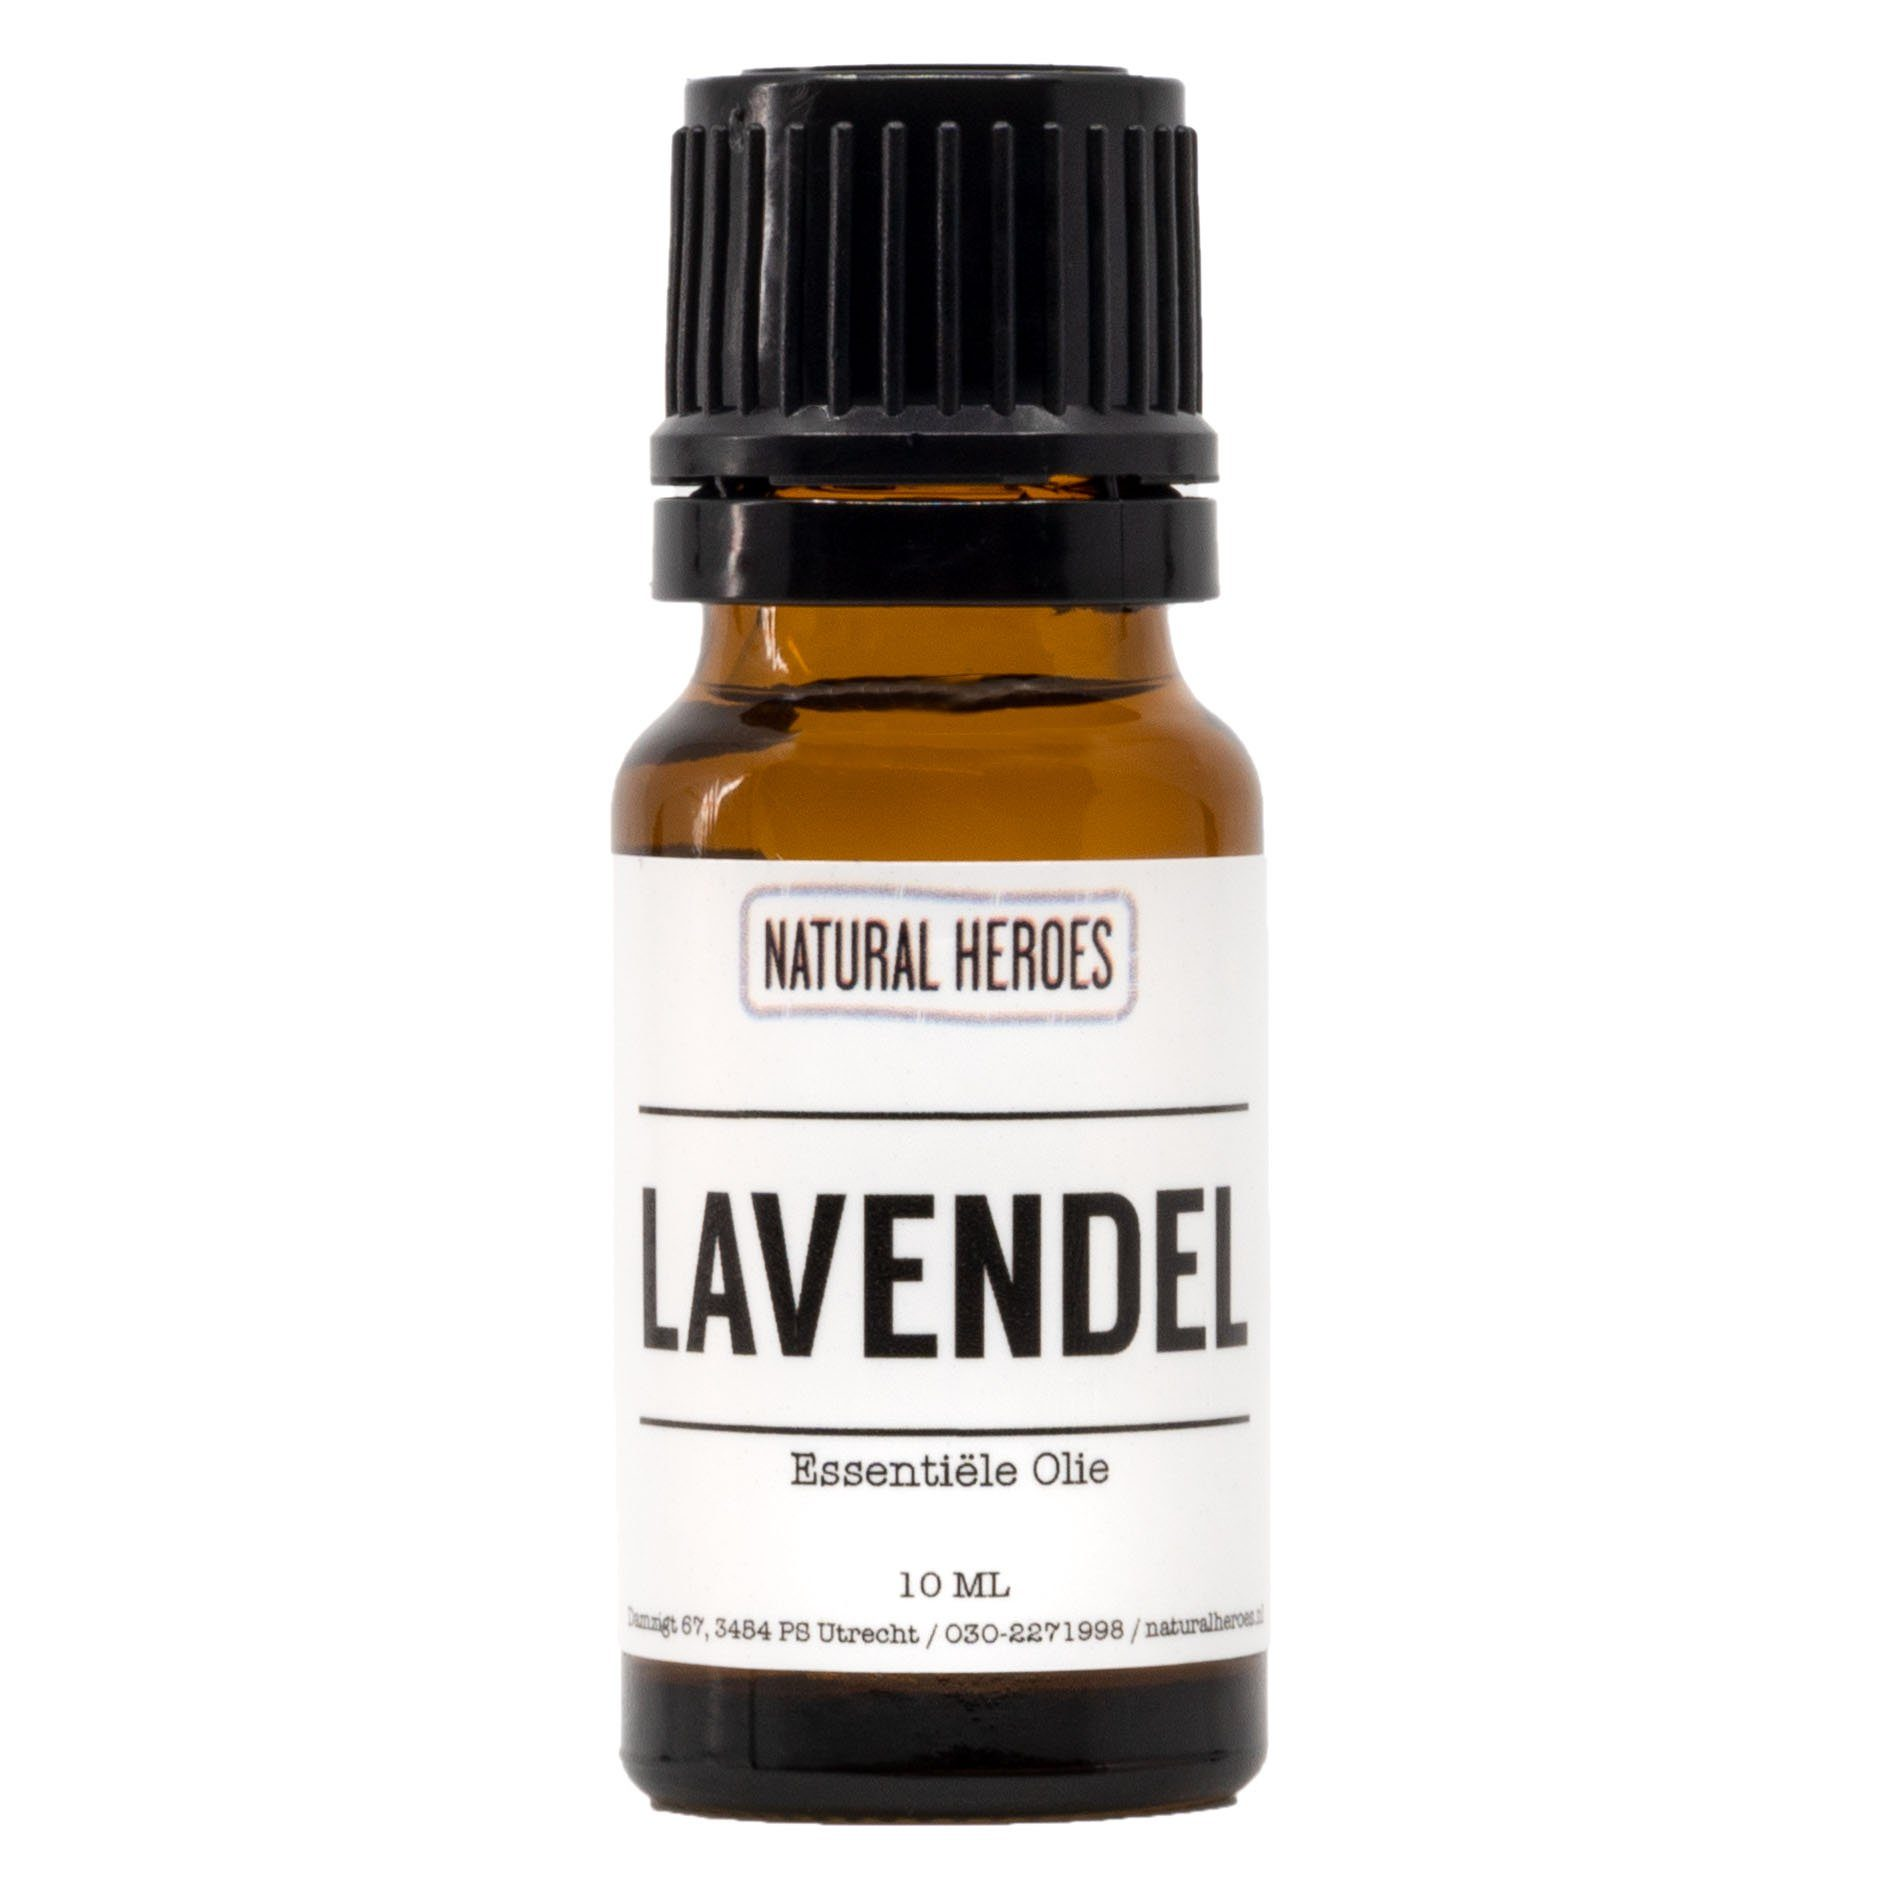 Lavendel Essentiële Olie Natural Heroes 10 ml